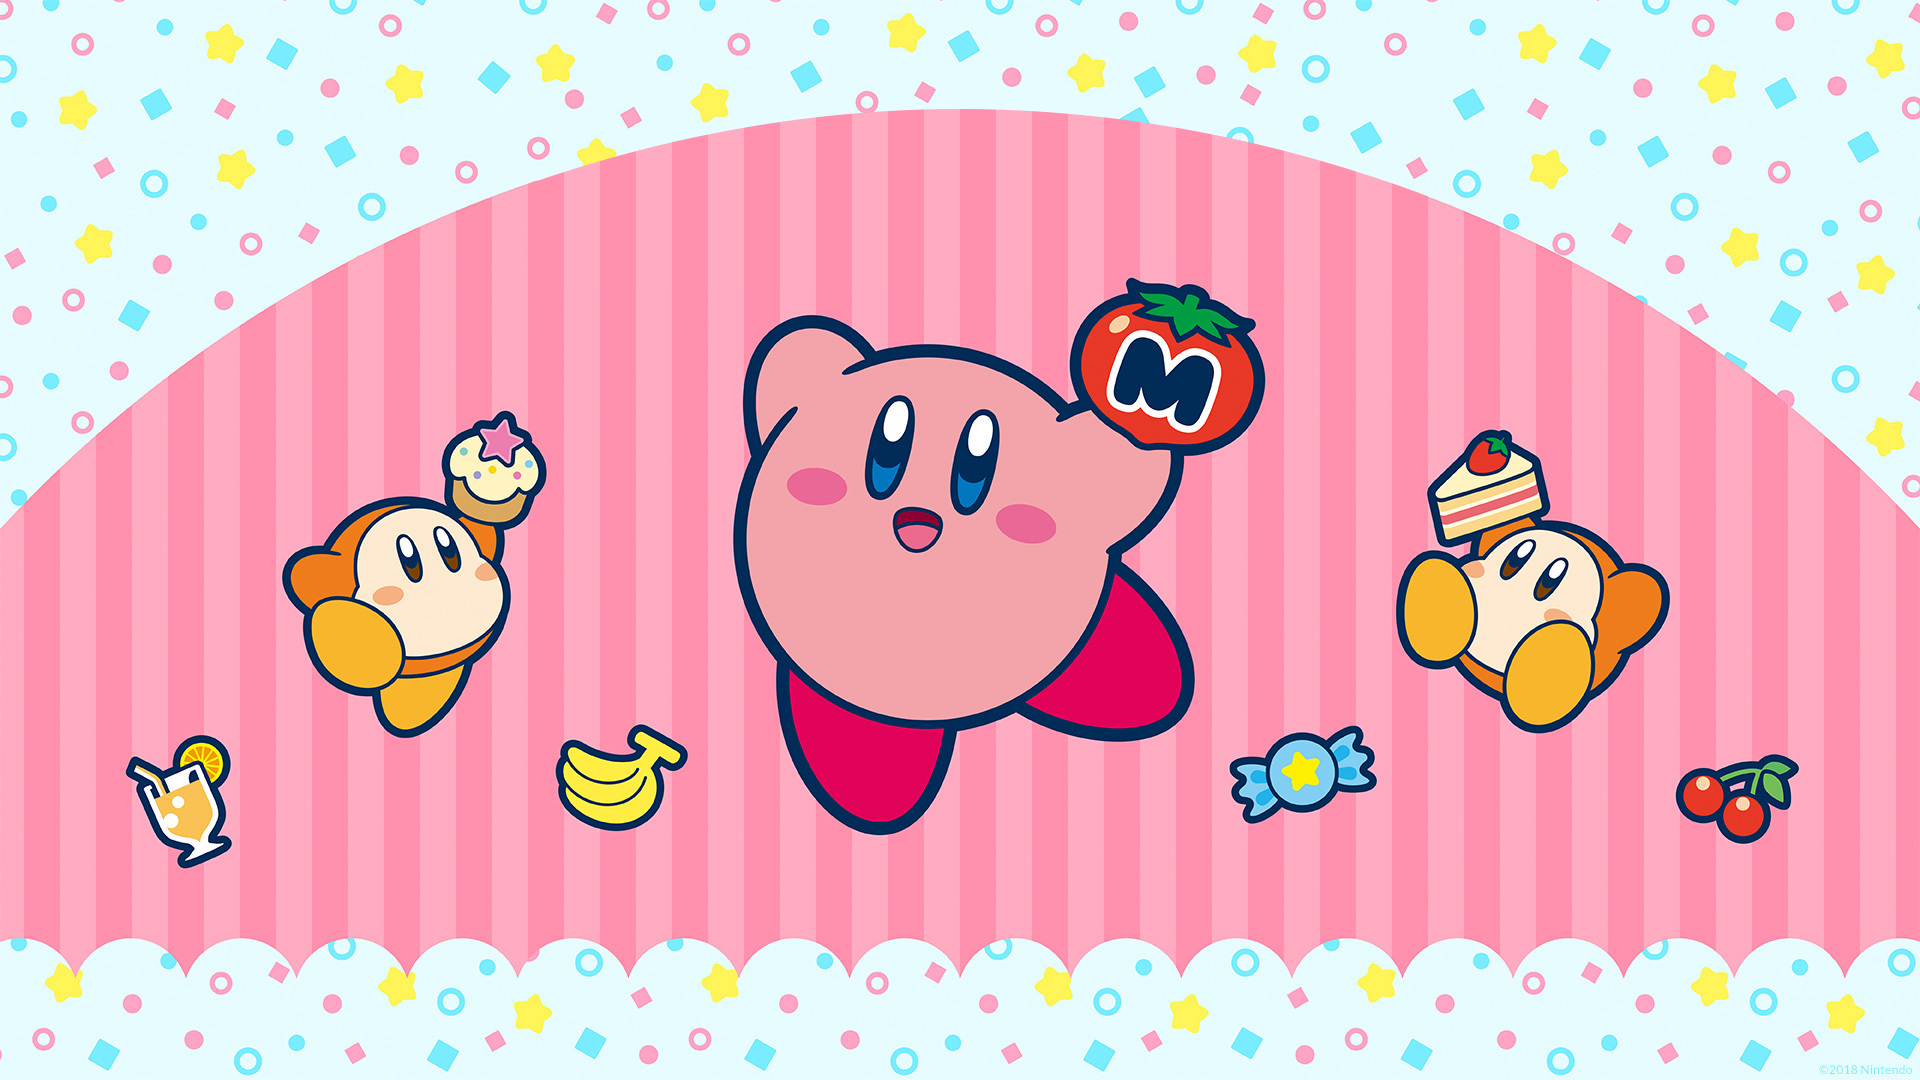 Kirby Wallpaper Google Search Kirby Happy Birthday Wallpaper